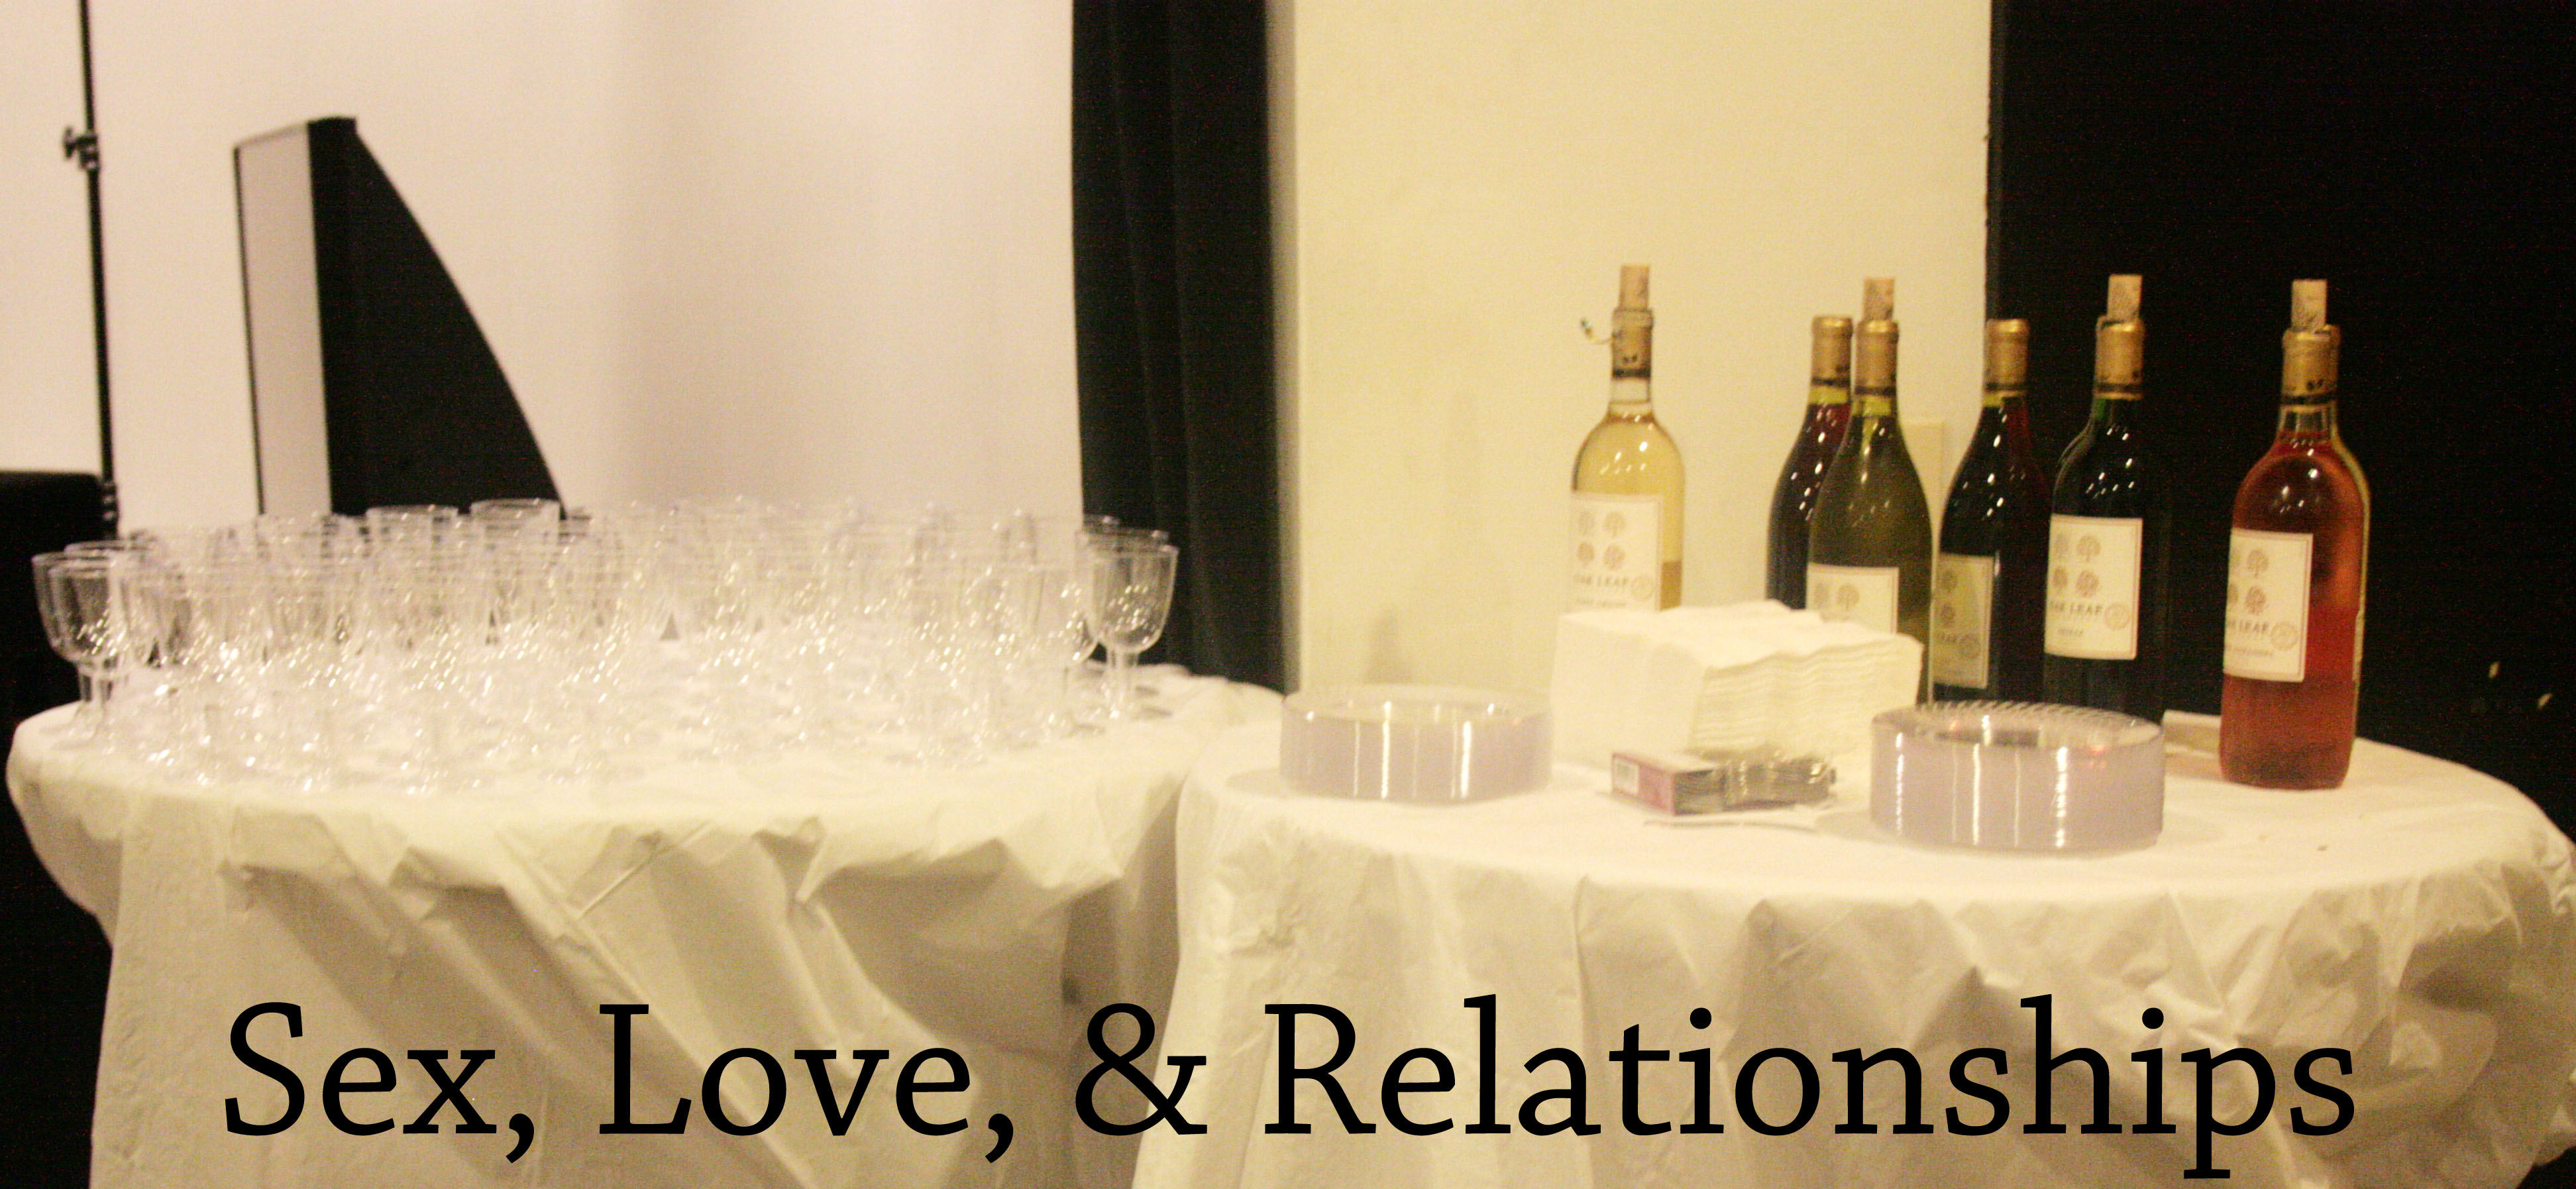 Sex, Love & Relationships Event